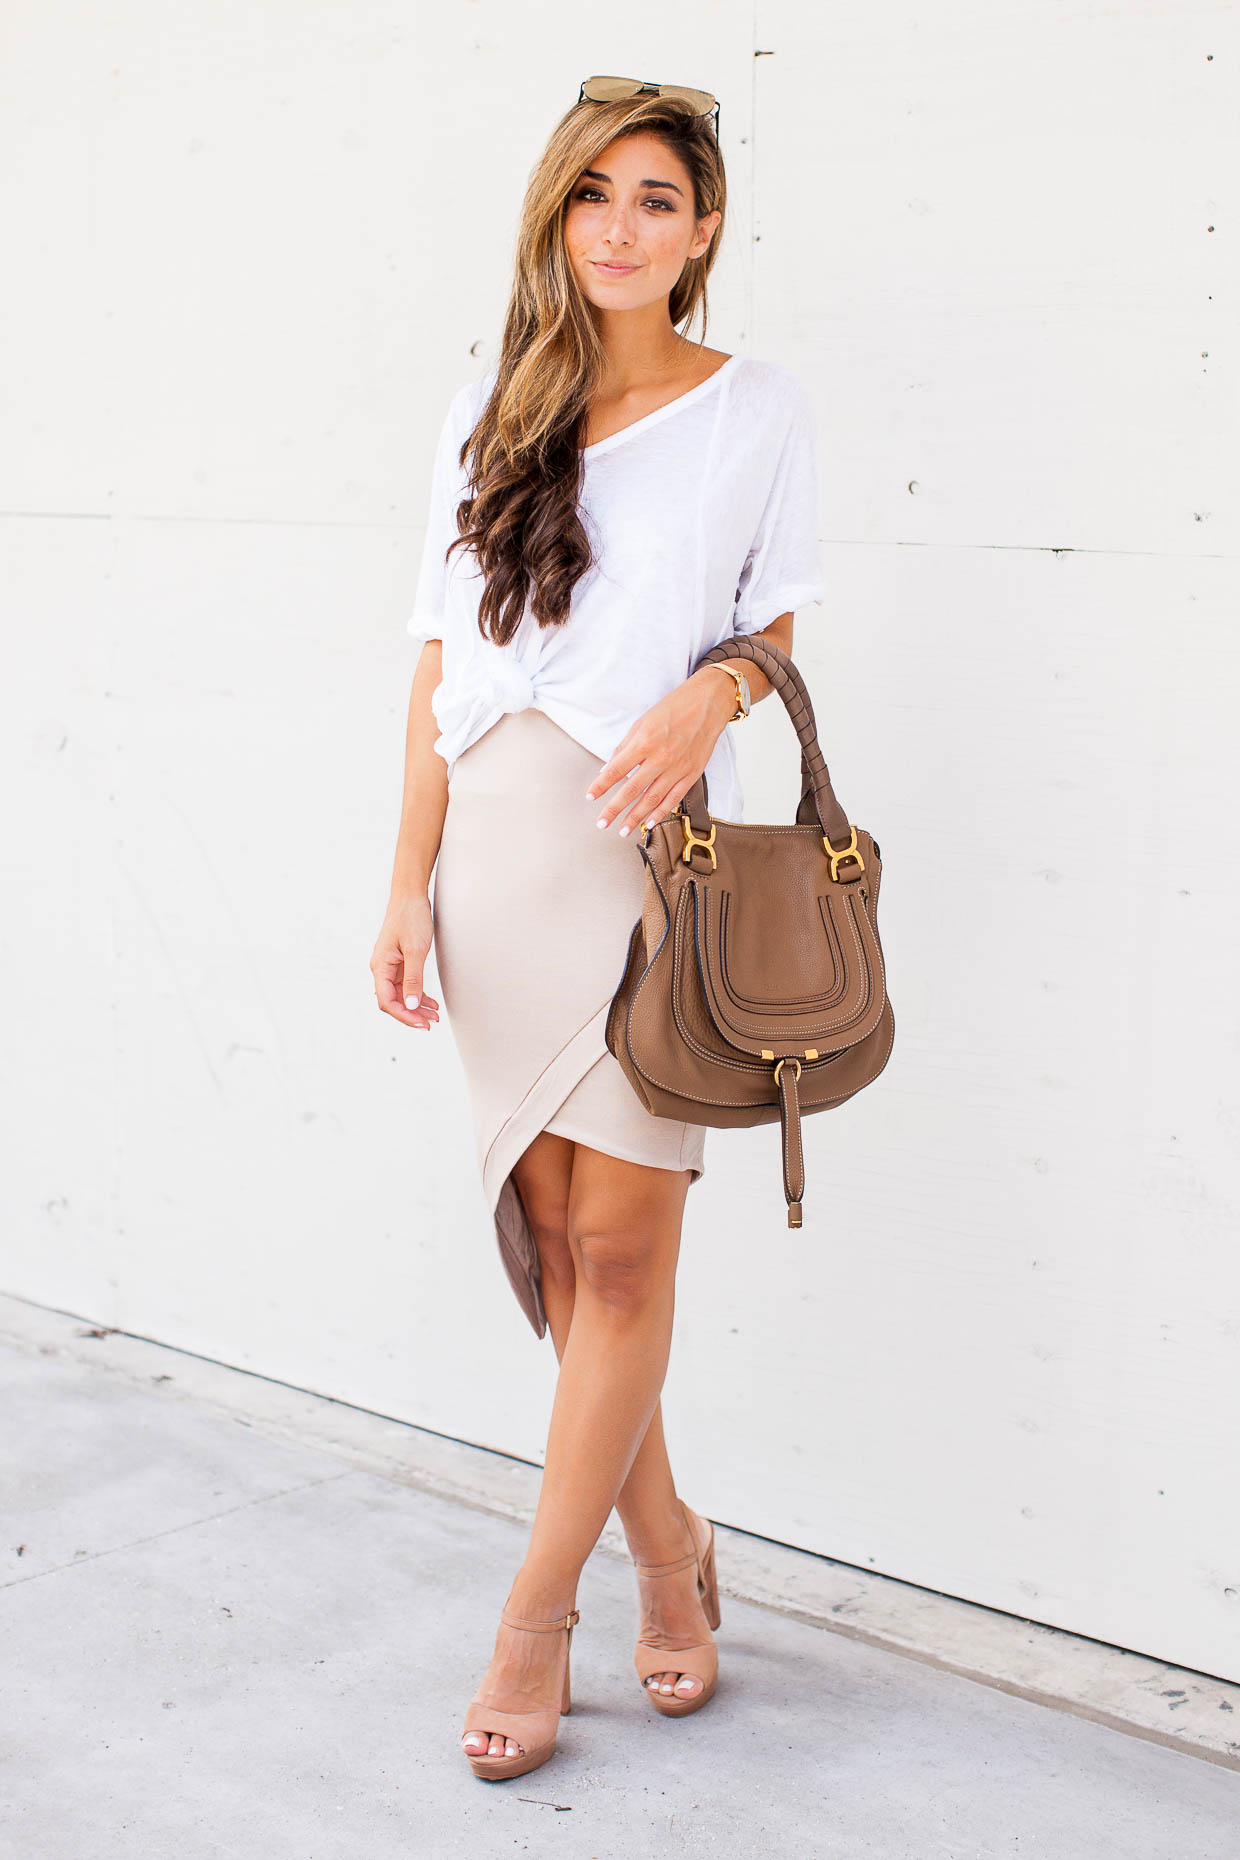 Fashion Blogger The Darling Detail is wearing a Free People Tee with the De Lacy Sara Skirt and Krysta Platform Sandals.